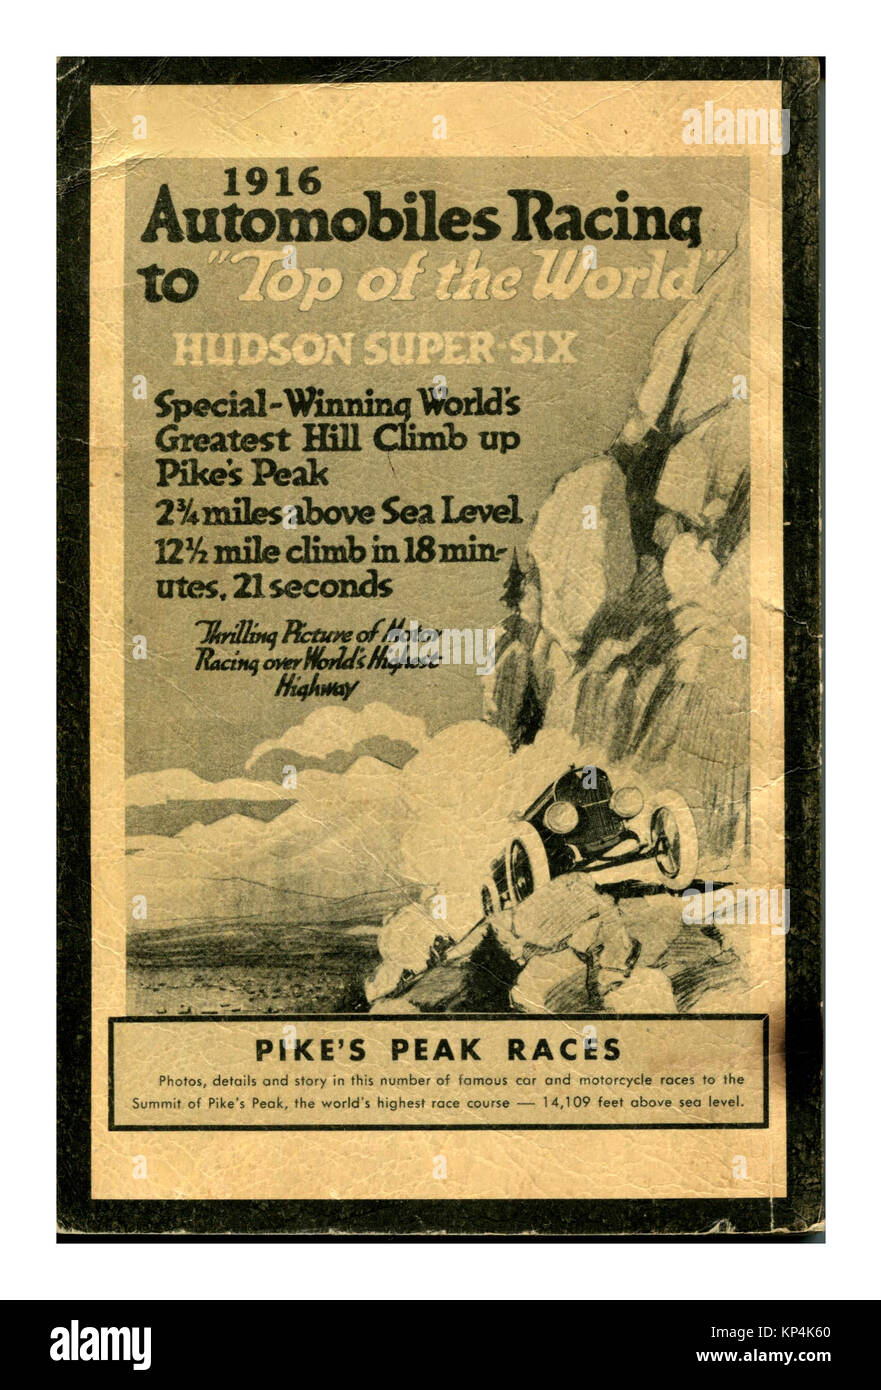 1900's Vintage 1916 'Pikes Peak' Automobile Racing Hill Climb 'Top of the World' Competition poster - Stock Image